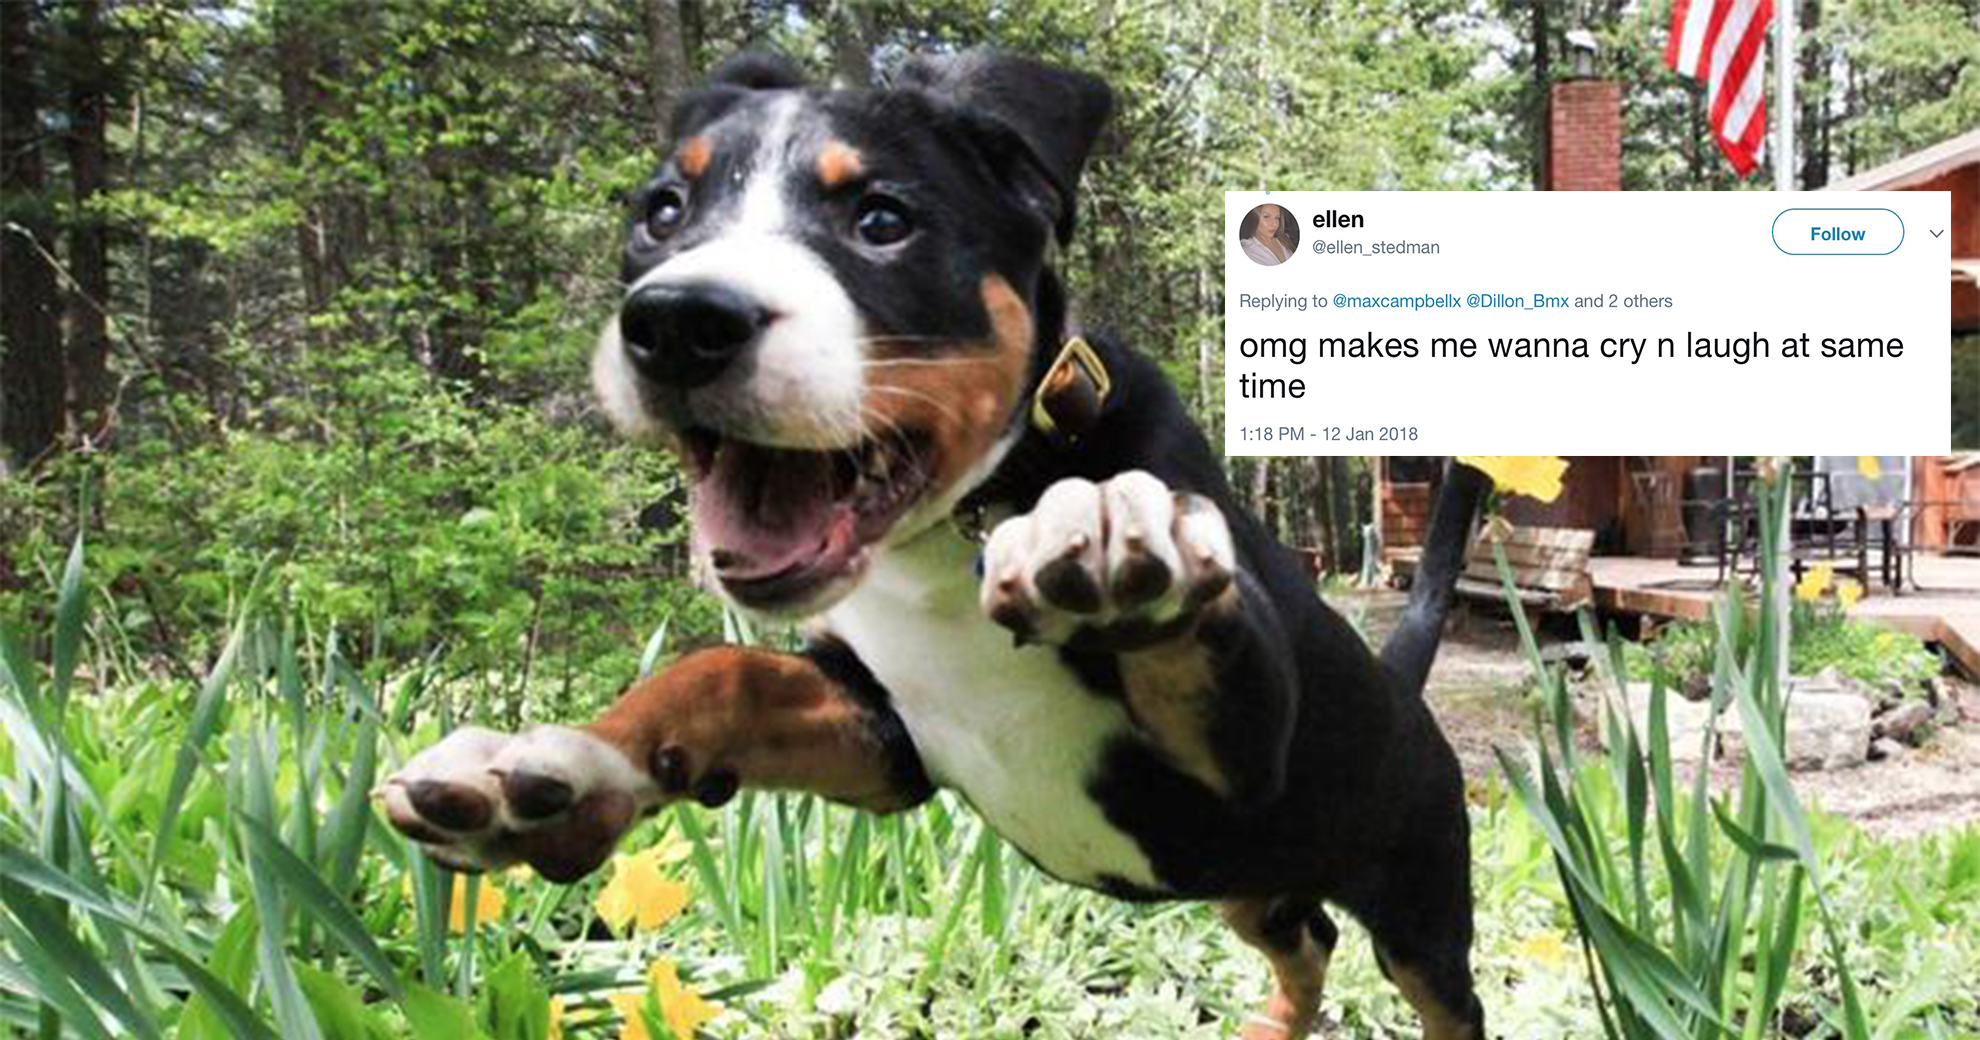 Dog Gets A Little Too Excited To See Its Human—And Twitter Is Rolling With Laughter